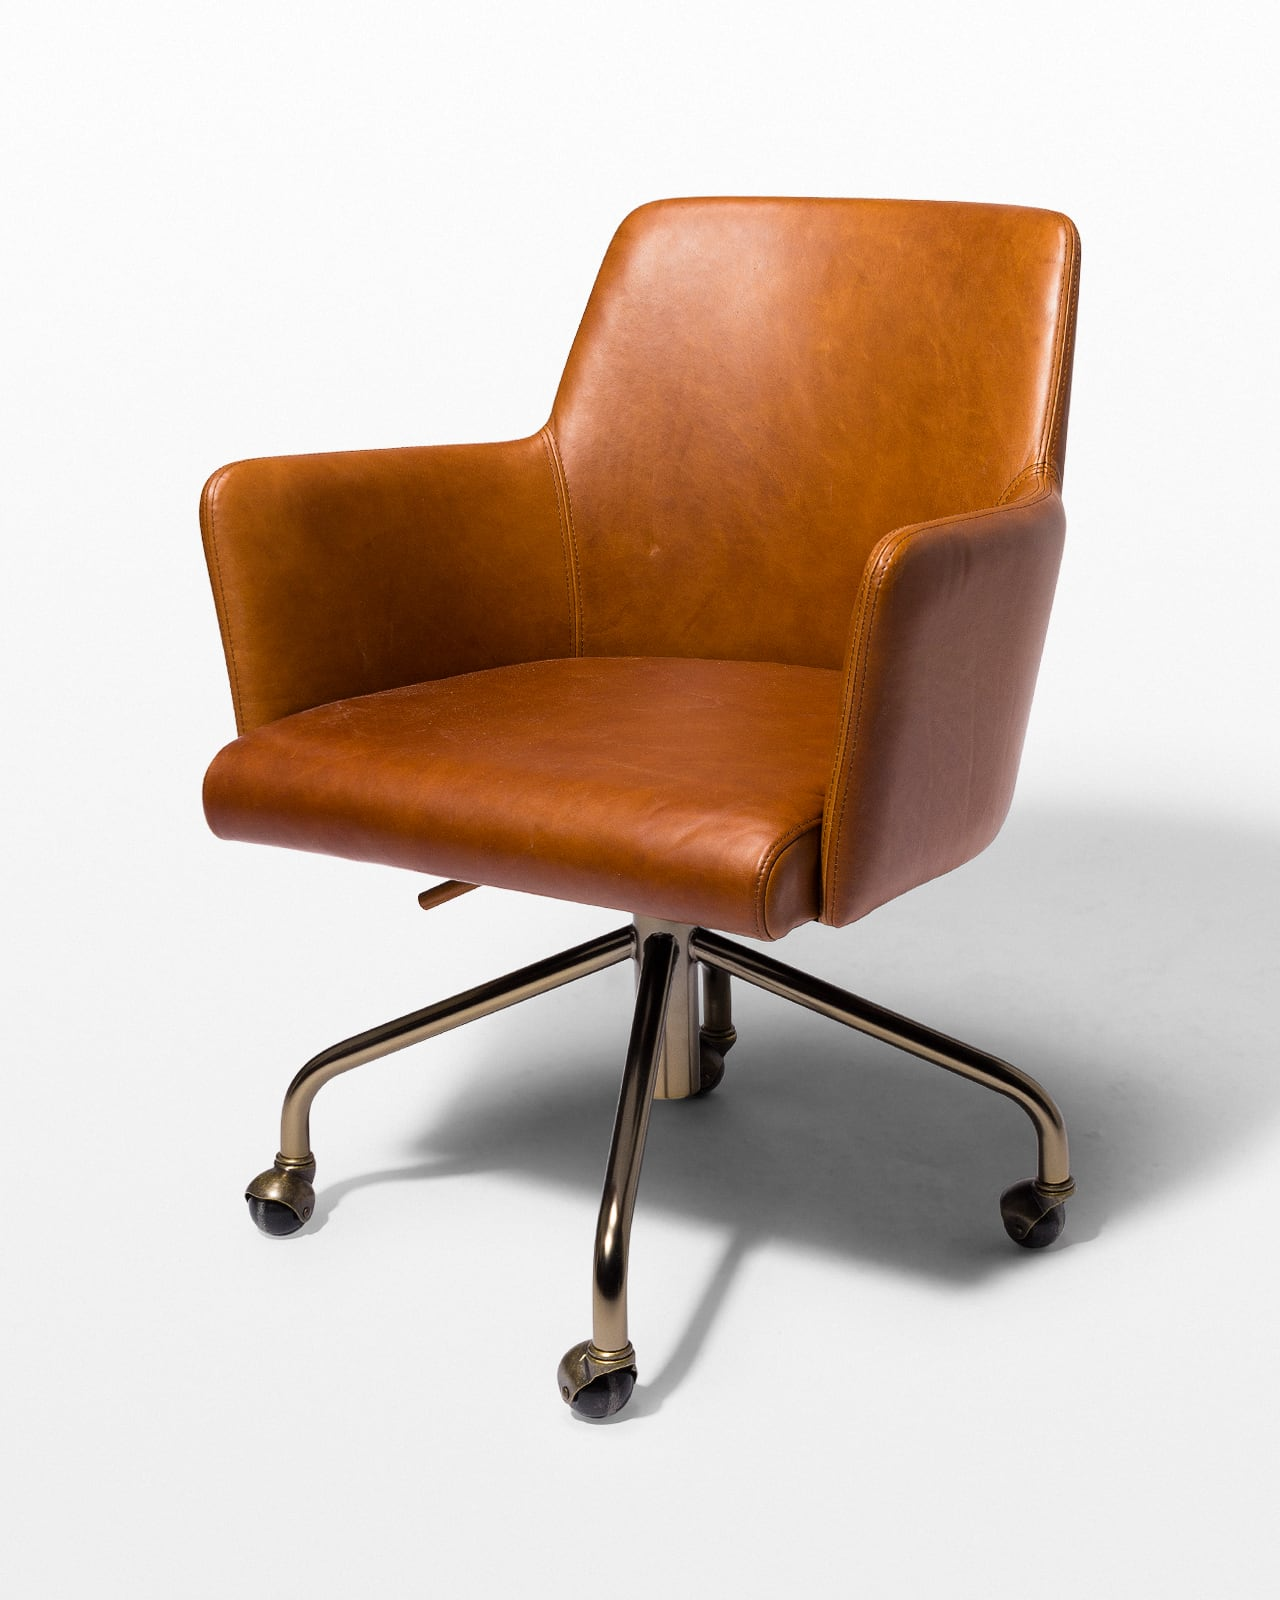 Amazing Ch620 Byrd Leather Rolling Desk Chair Prop Rental Acme Short Links Chair Design For Home Short Linksinfo